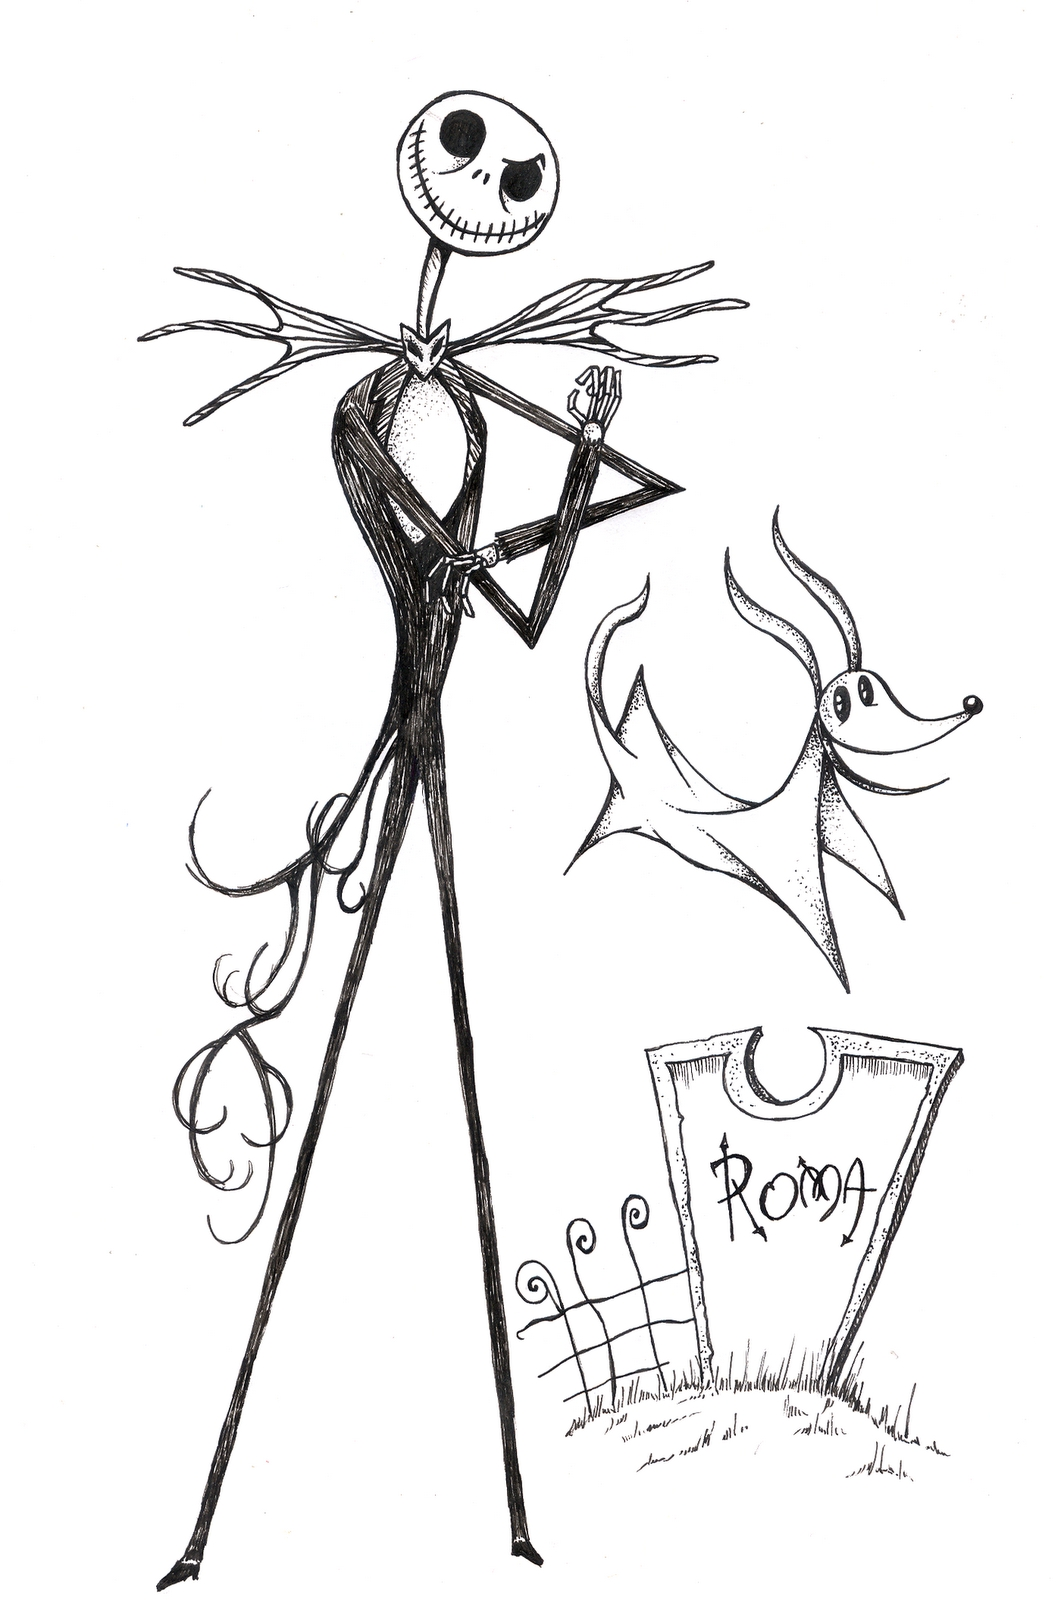 21 Jack Skellington Coloring Page Compilation | FREE COLORING PAGES ...